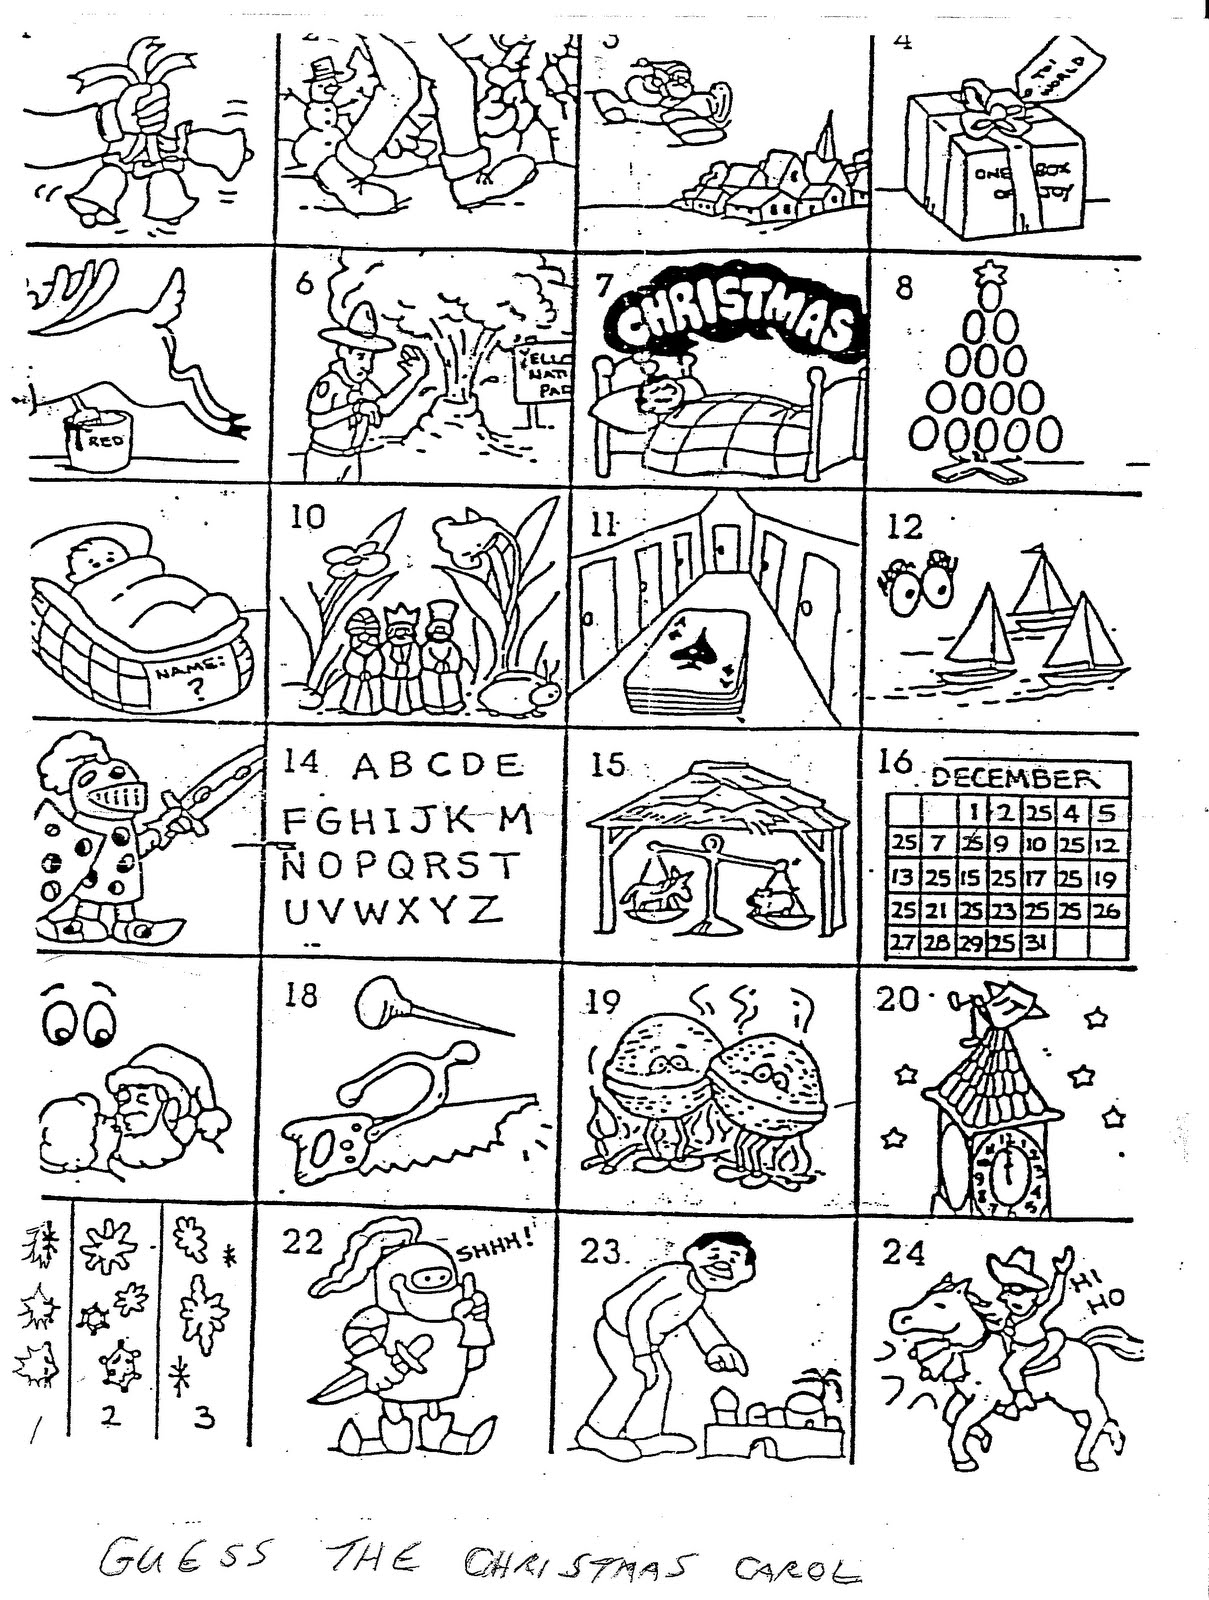 Can You Name the Christmas Carol in each Box?